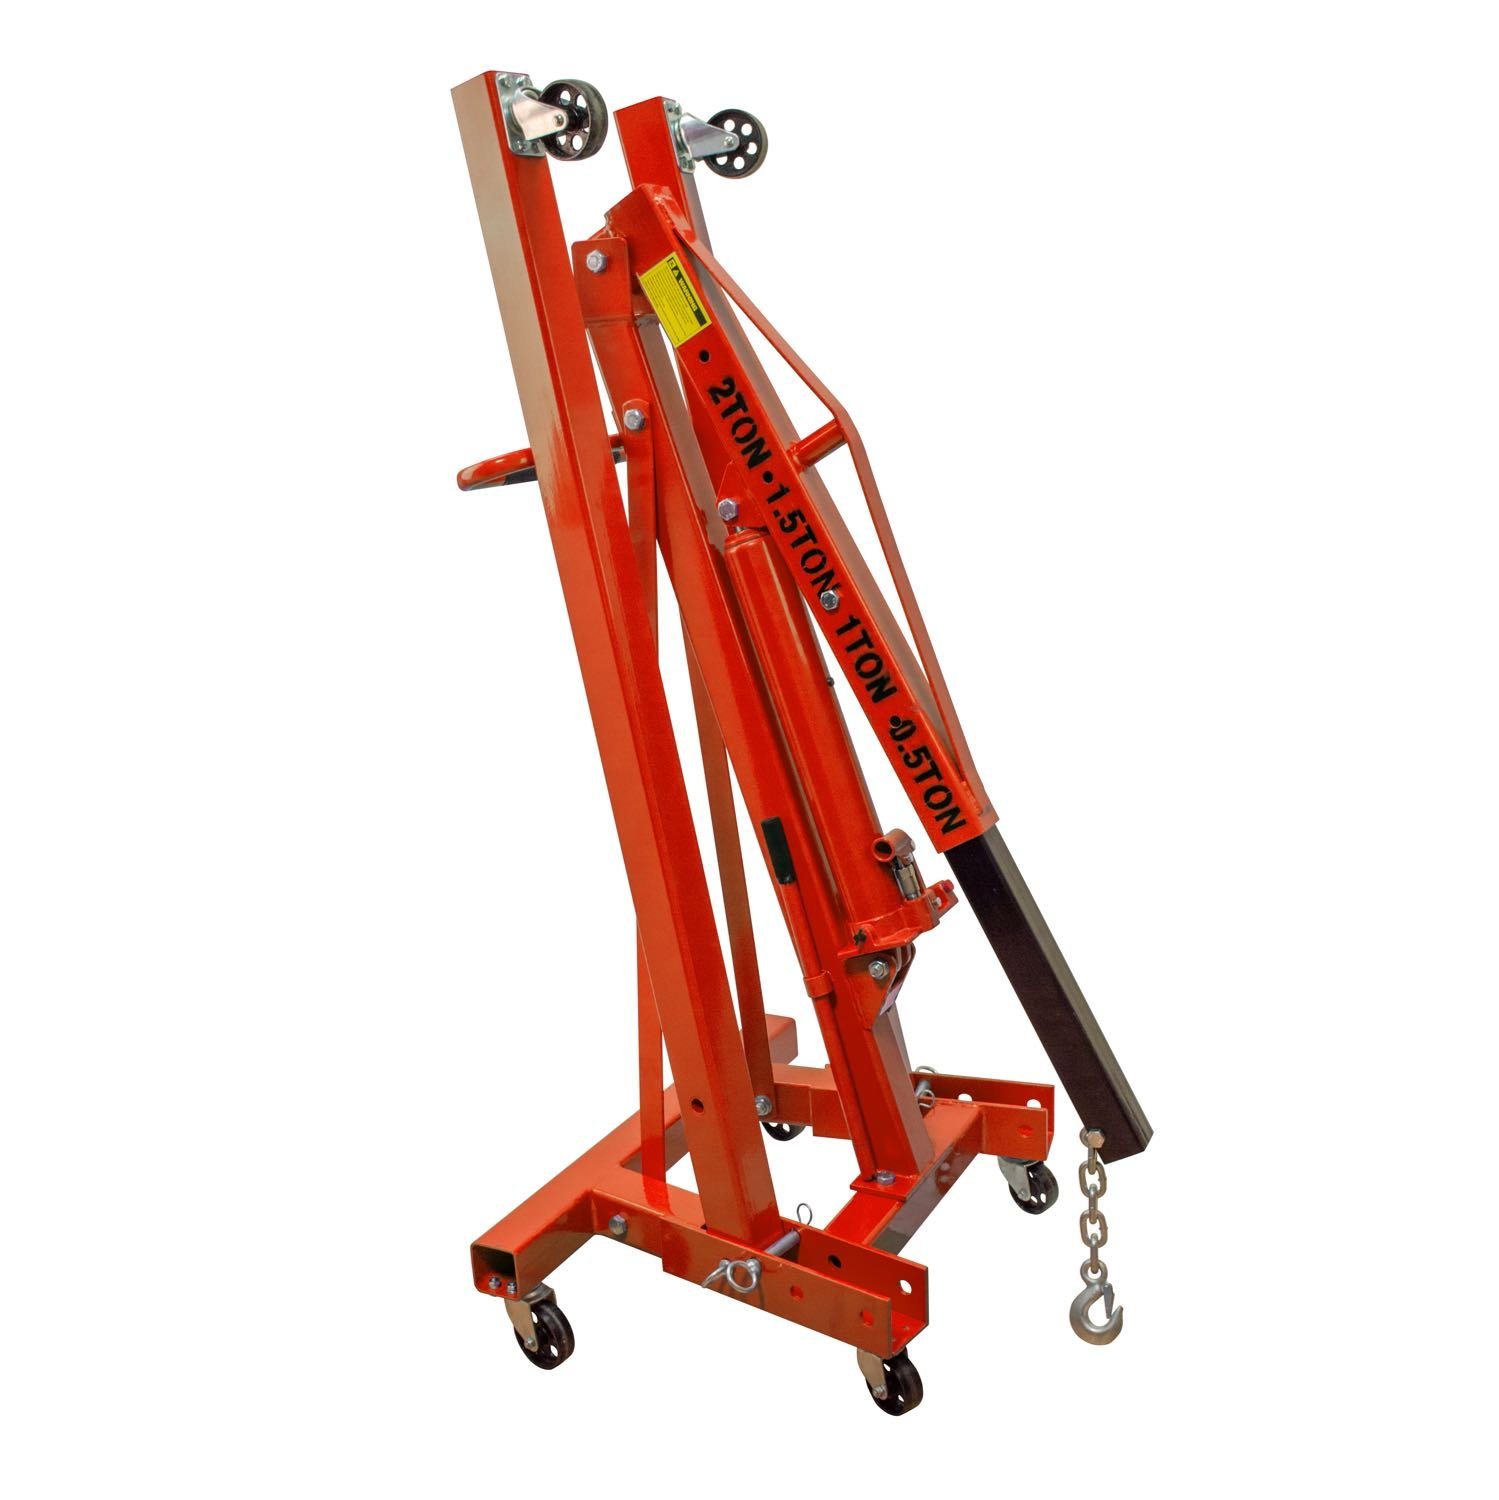 OEMTOOLS 24830 2 Ton Folding Shop Crane